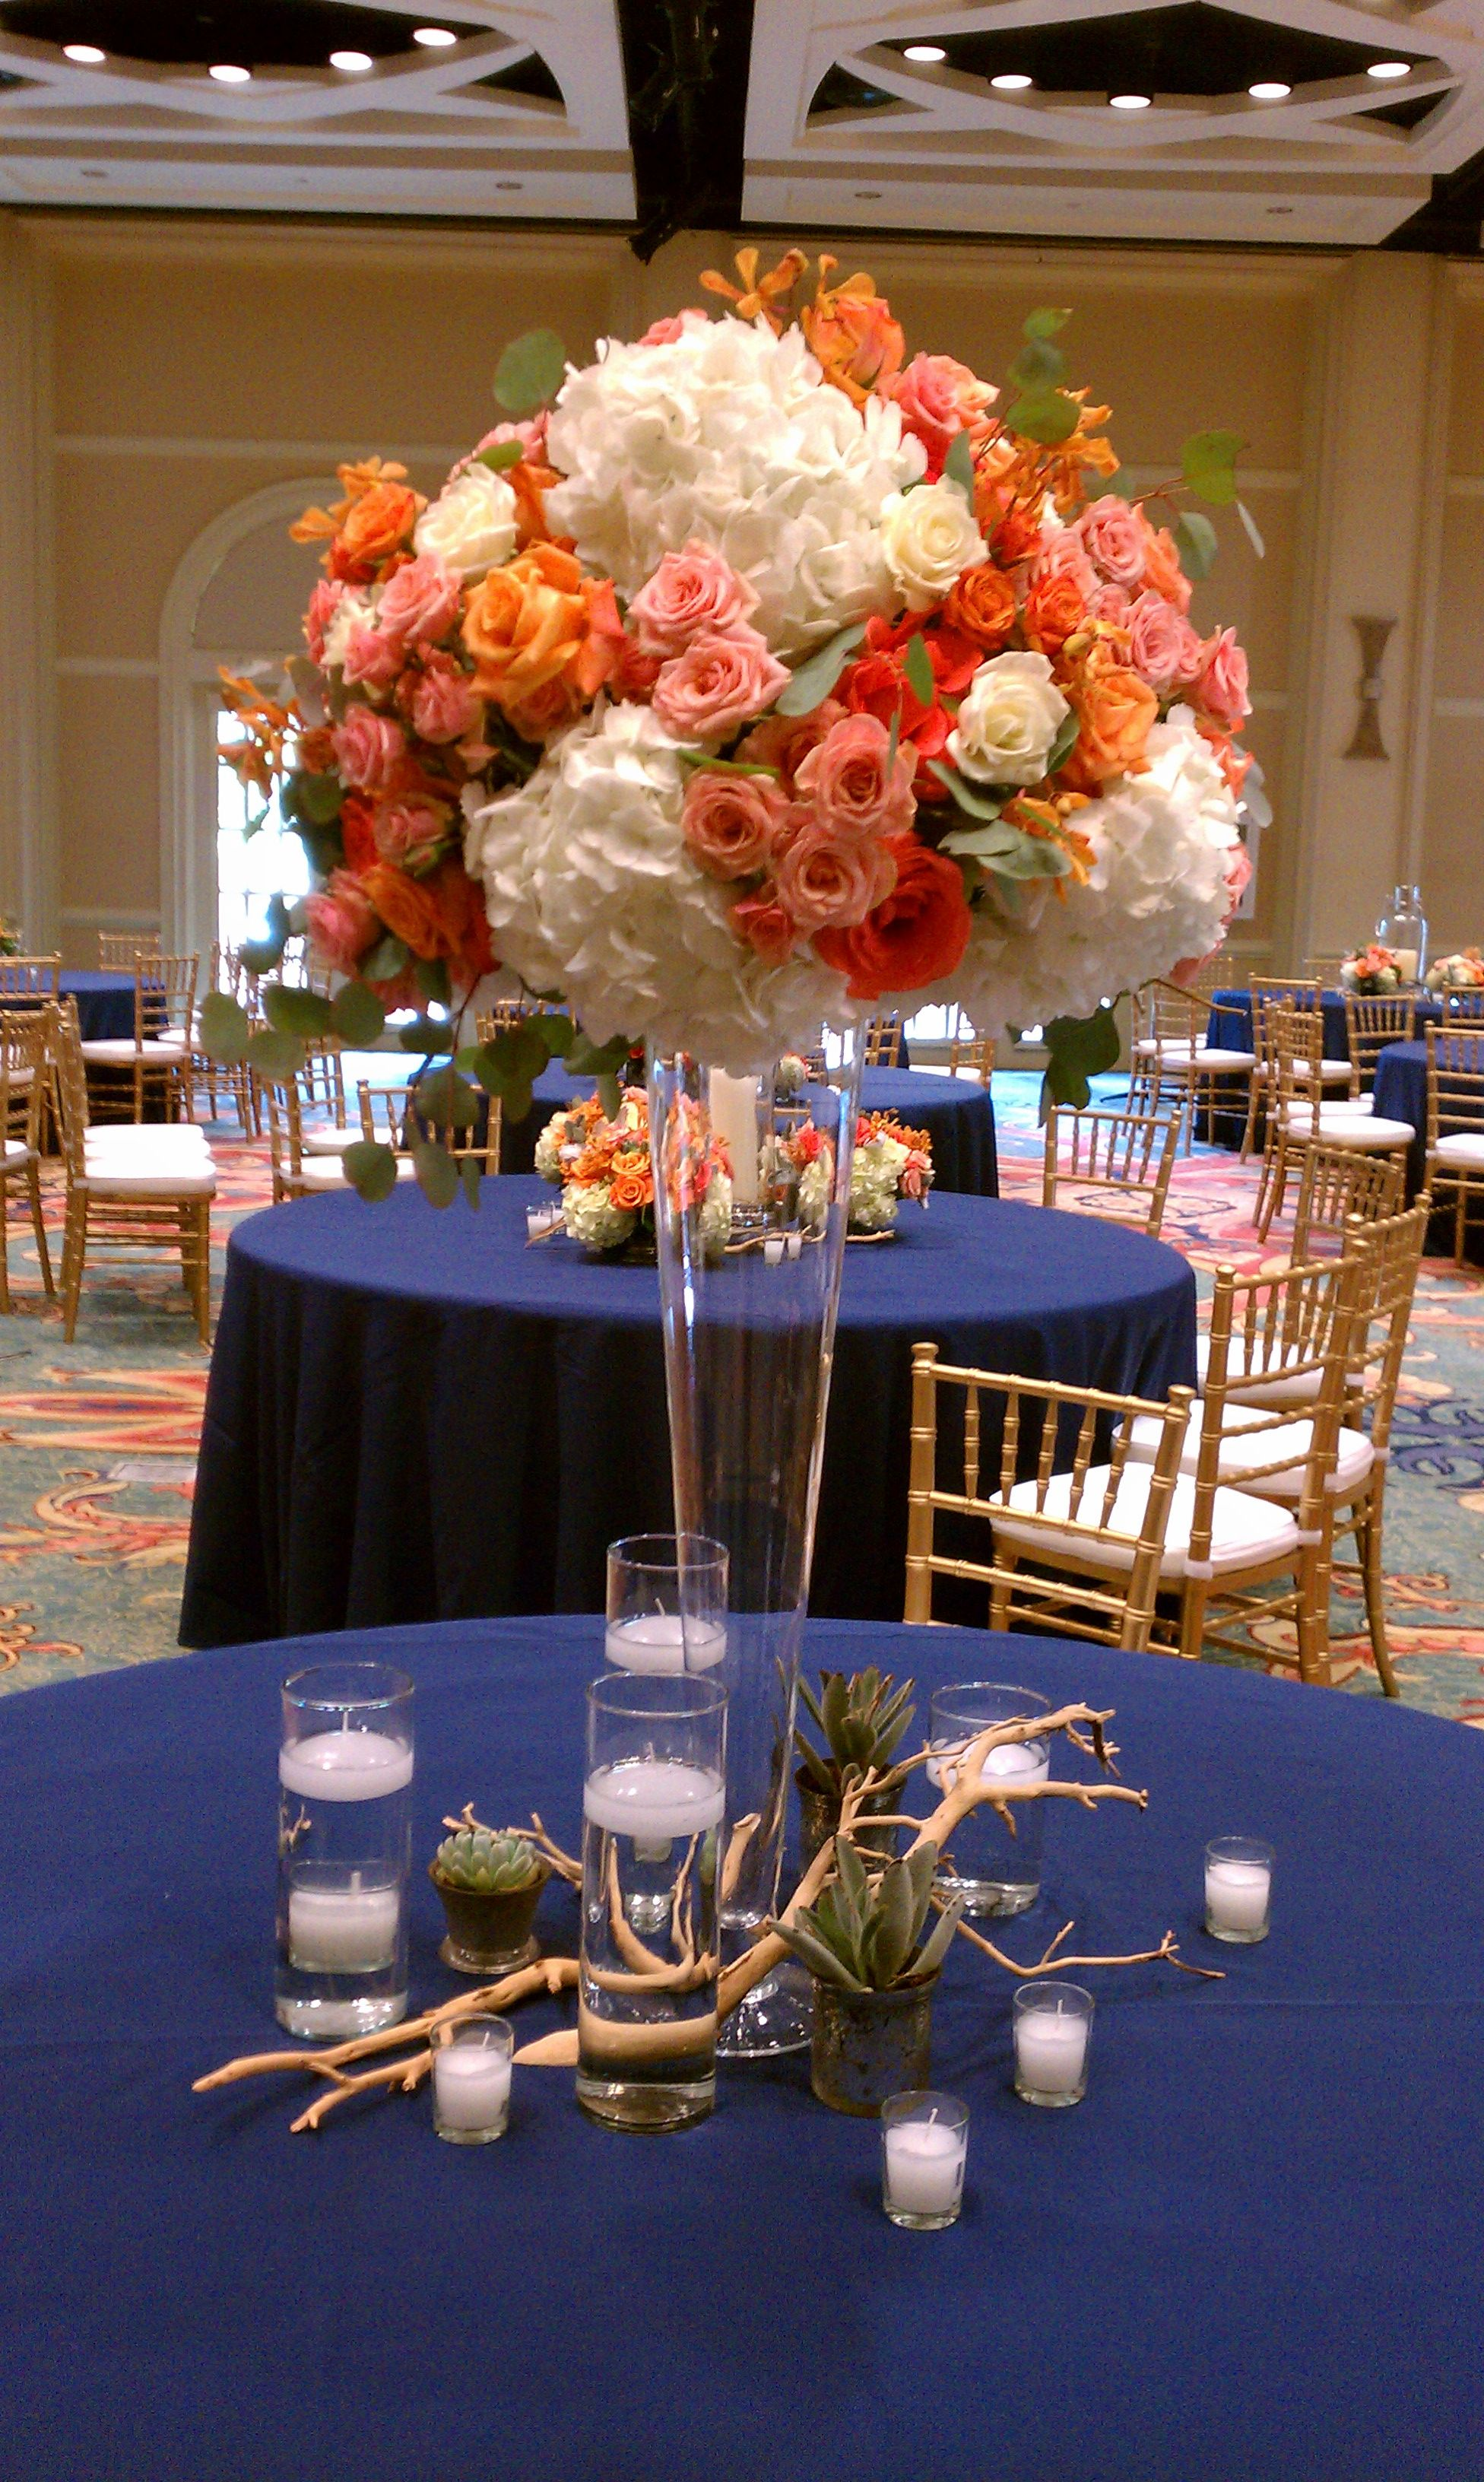 Tall white peach and coral centerpiece centerpieces